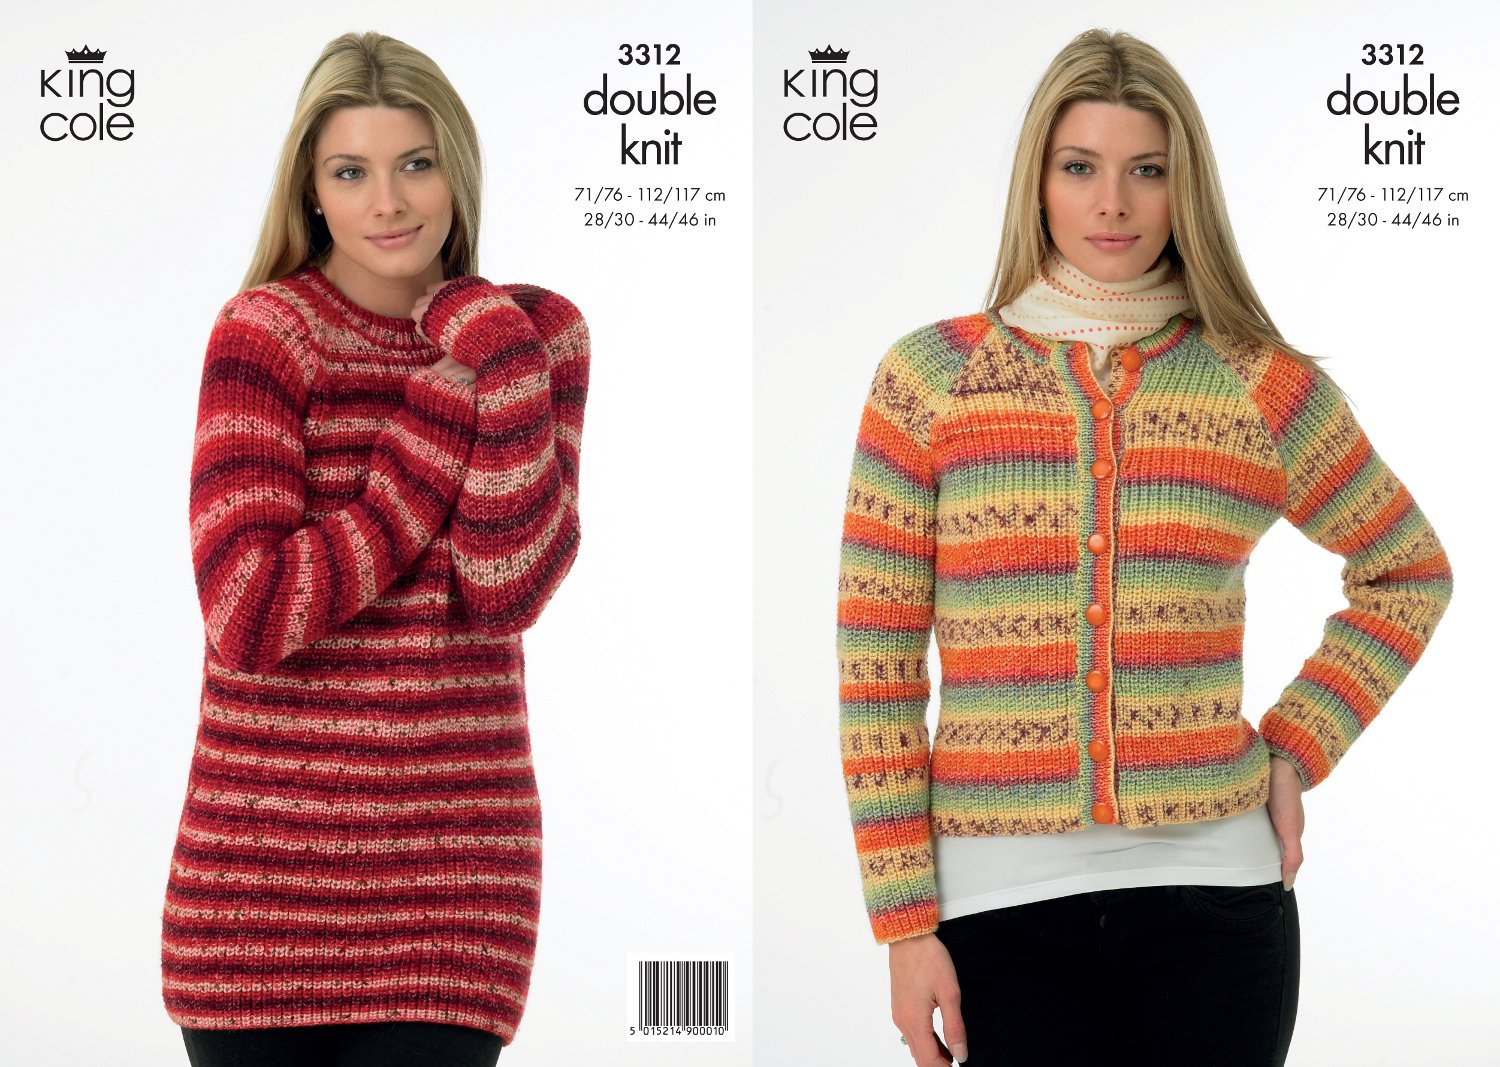 King cole ladies double knitting pattern womens dk knitted sweater king cole ladies double knitting pattern womens dk knitted sweater jacket 3312 amazon kitchen home bankloansurffo Image collections